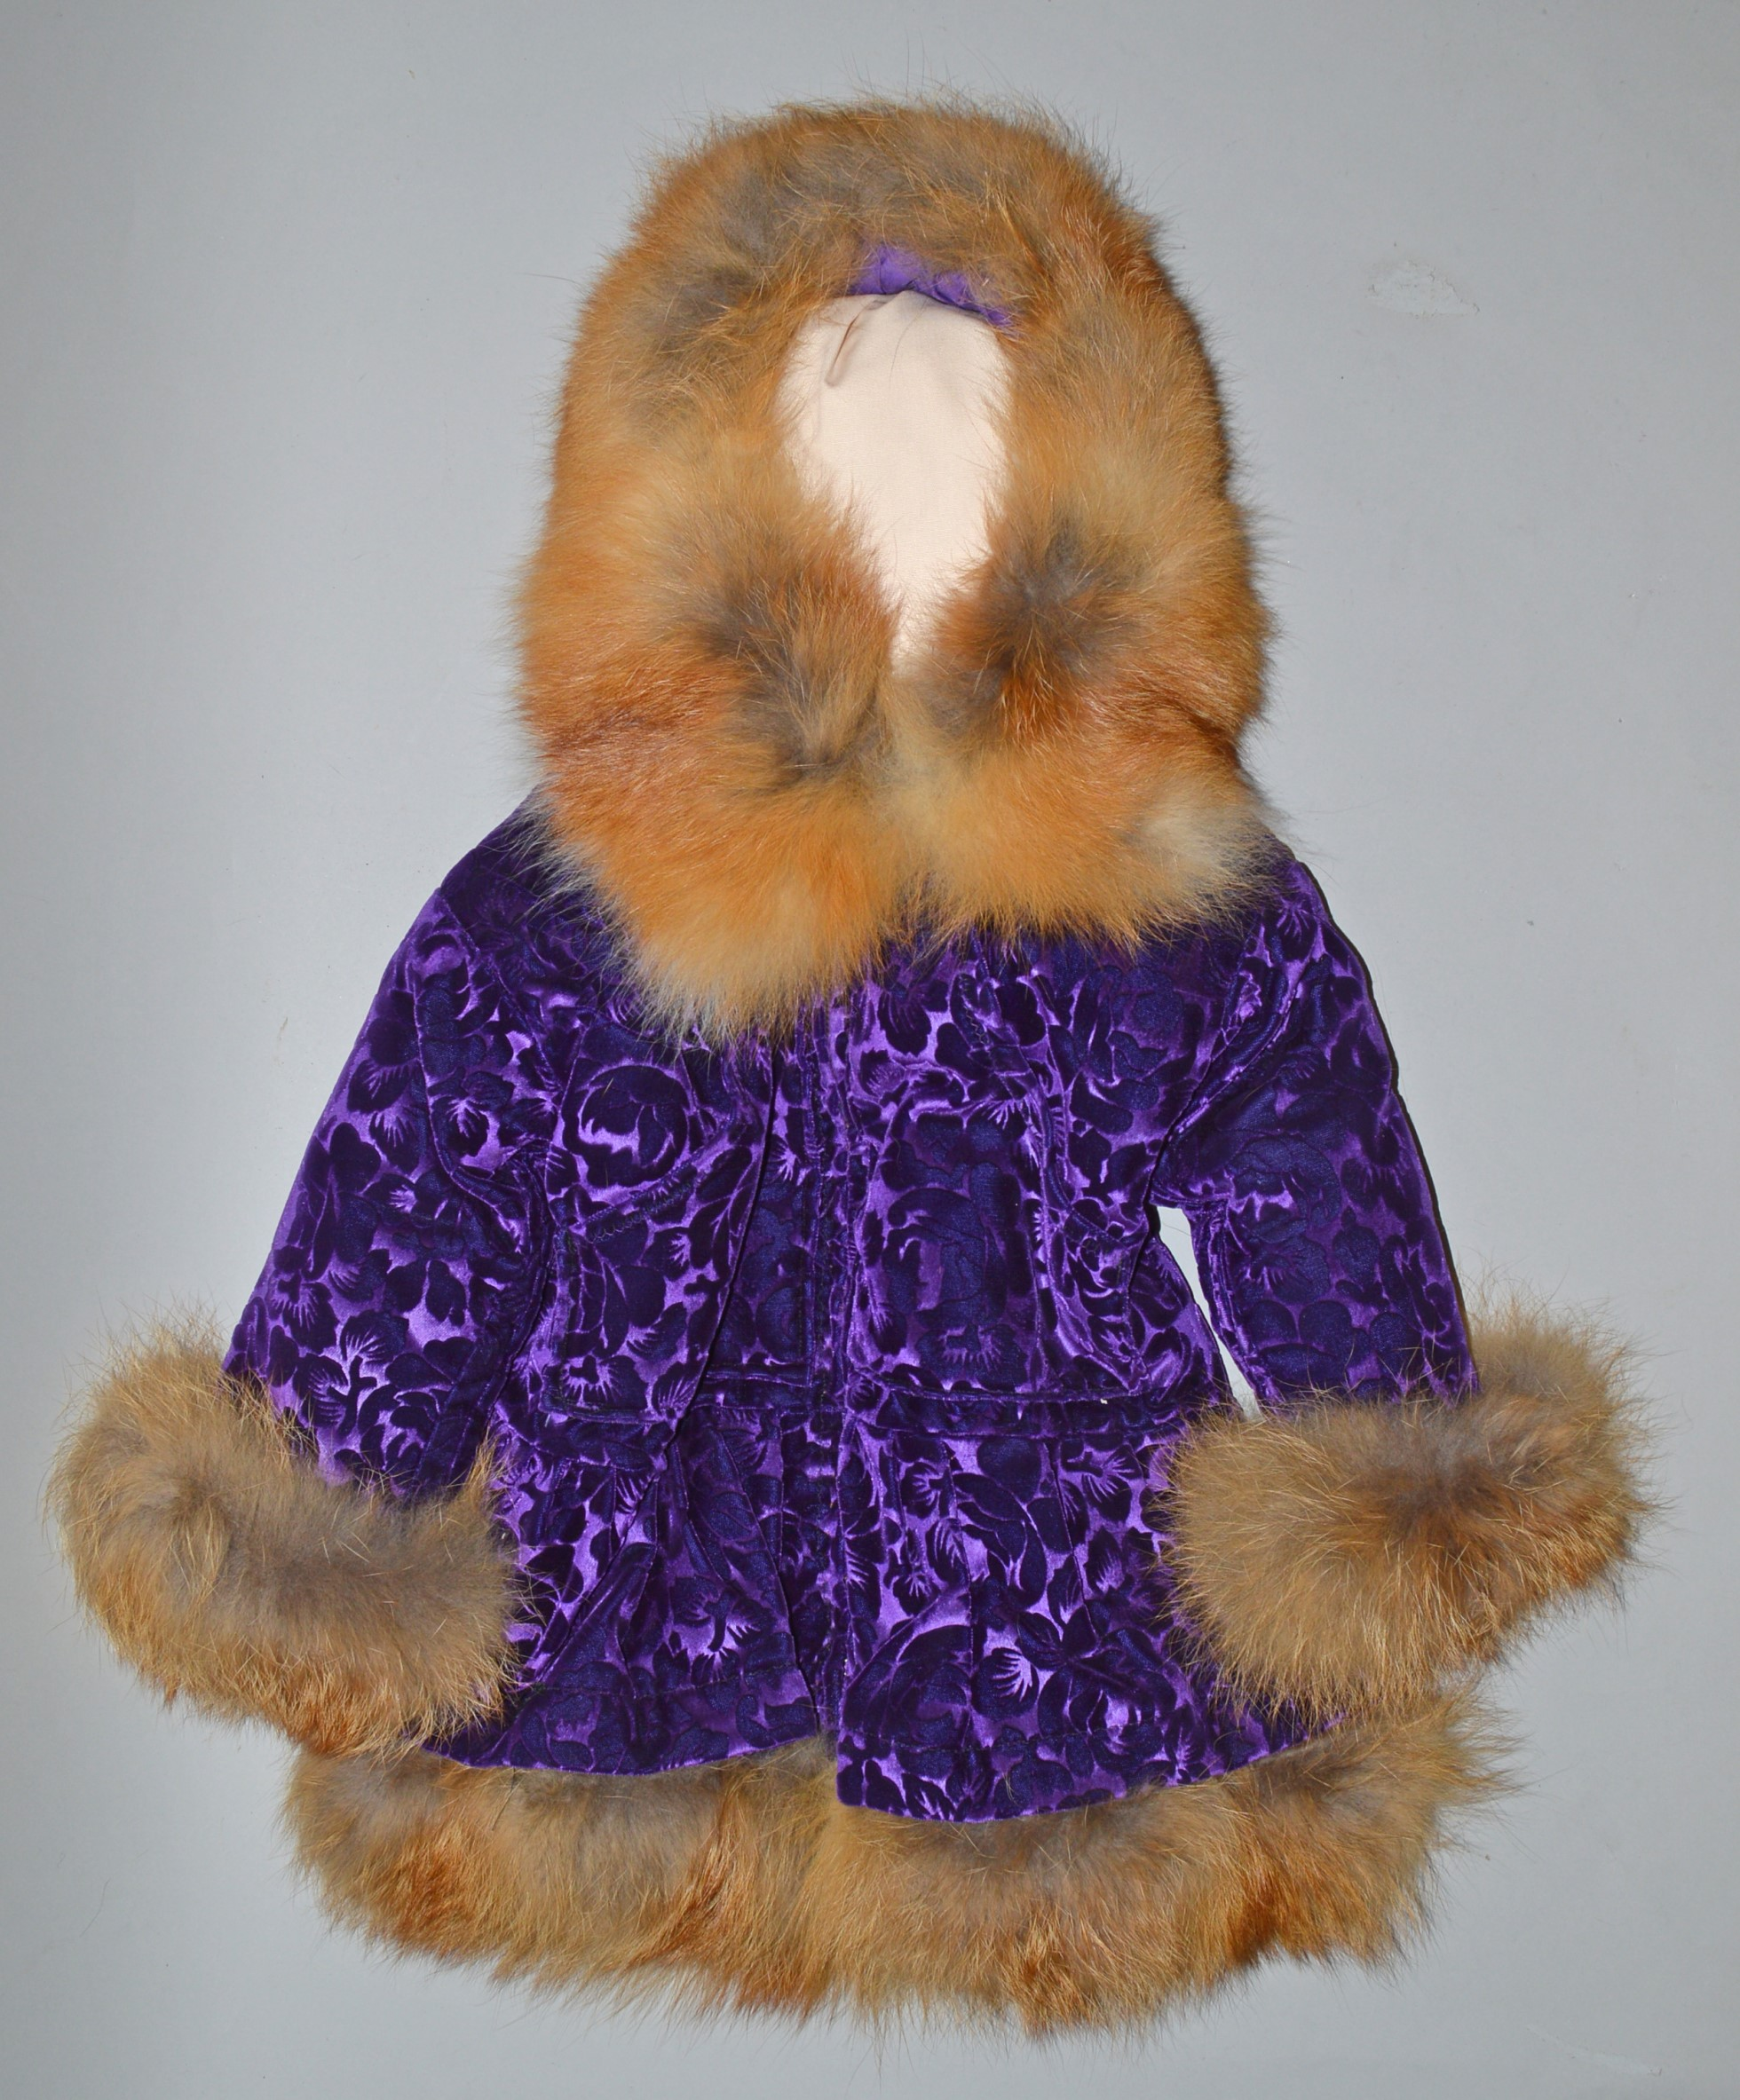 Child's parka made of purple velveteen, mauve with a red fox trim on the hood, cuffs and bottom of the jacket.